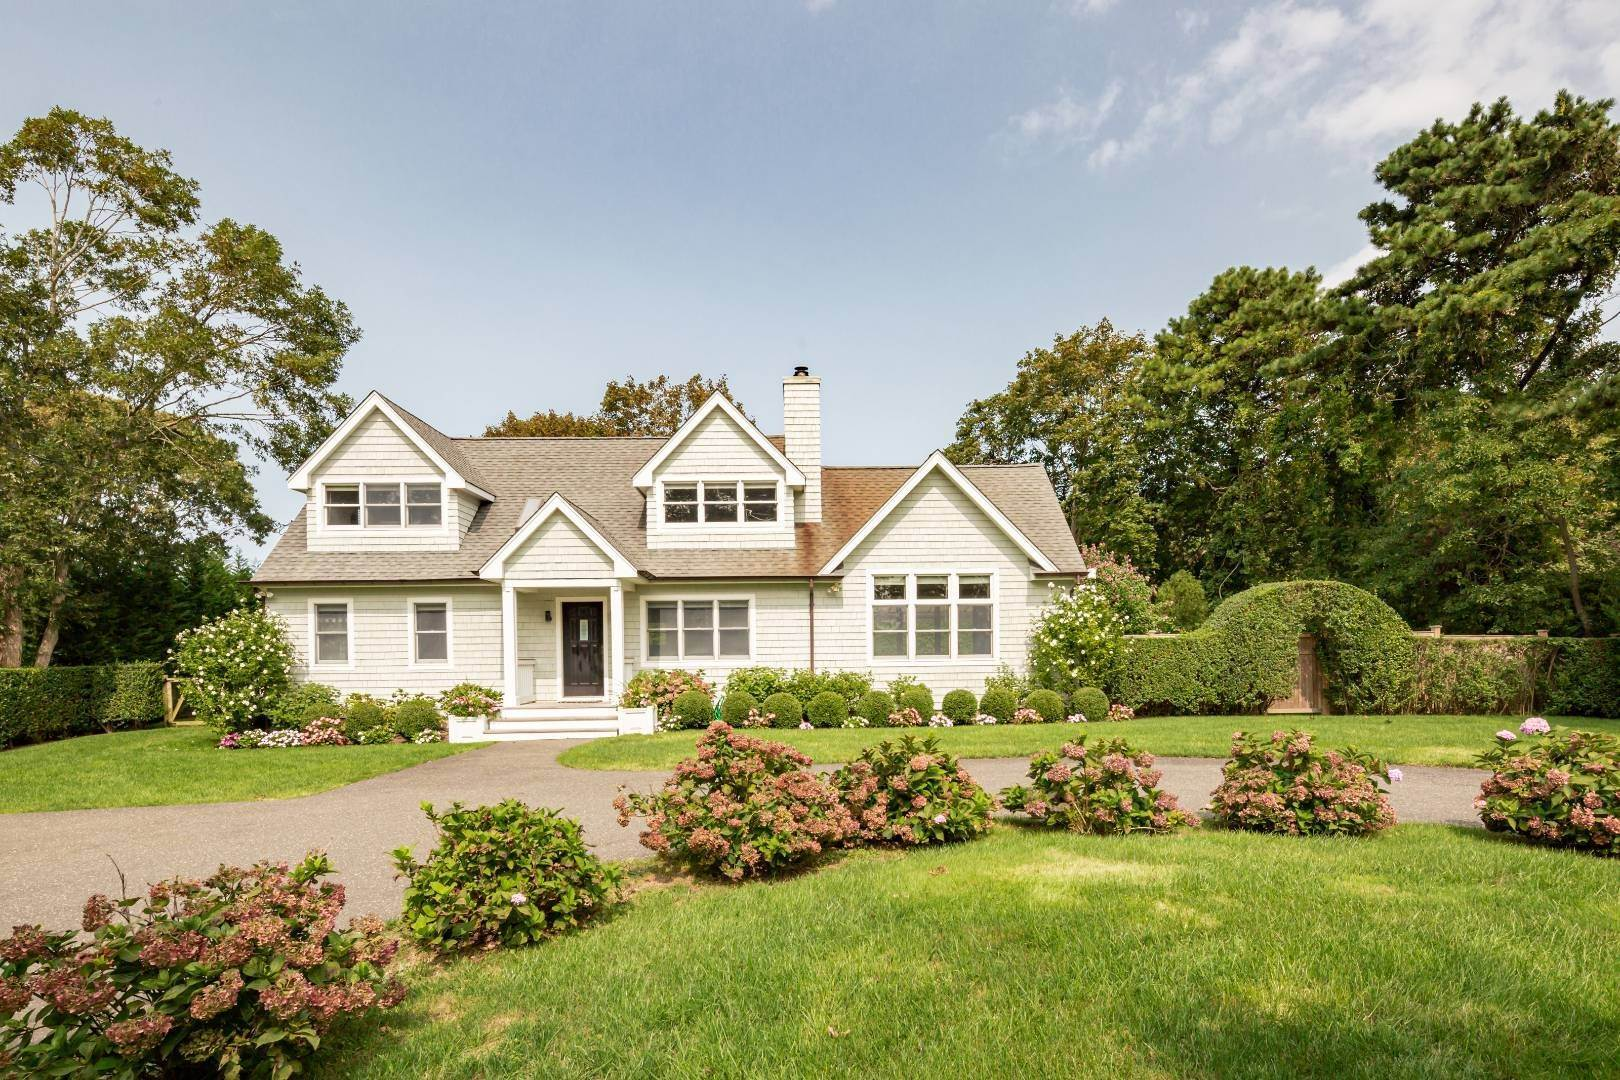 Single Family Home for Sale at Southampton New To The Market 31 Highland Road, Southampton, NY 11968